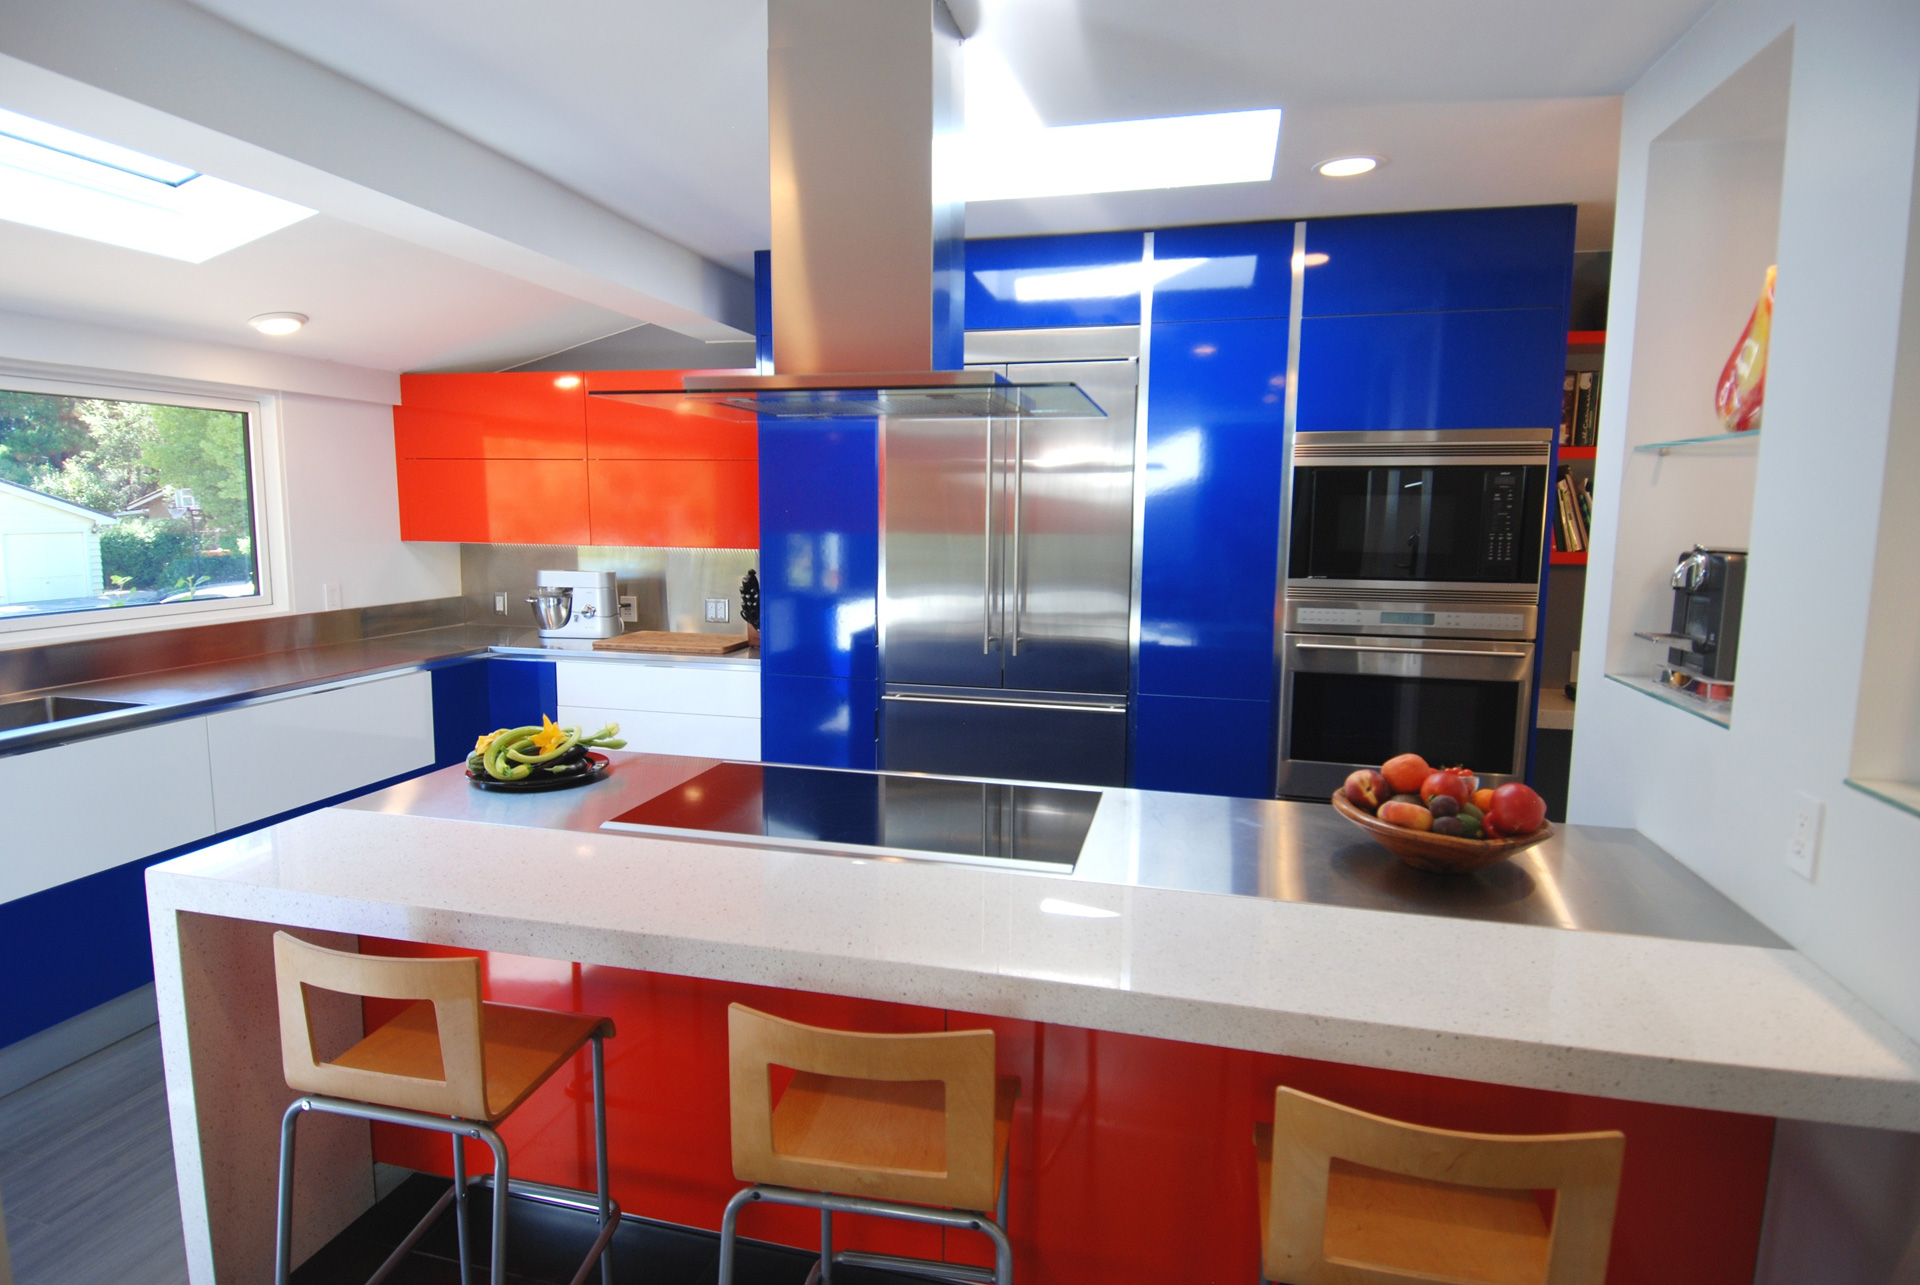 Brighten up the kitchen